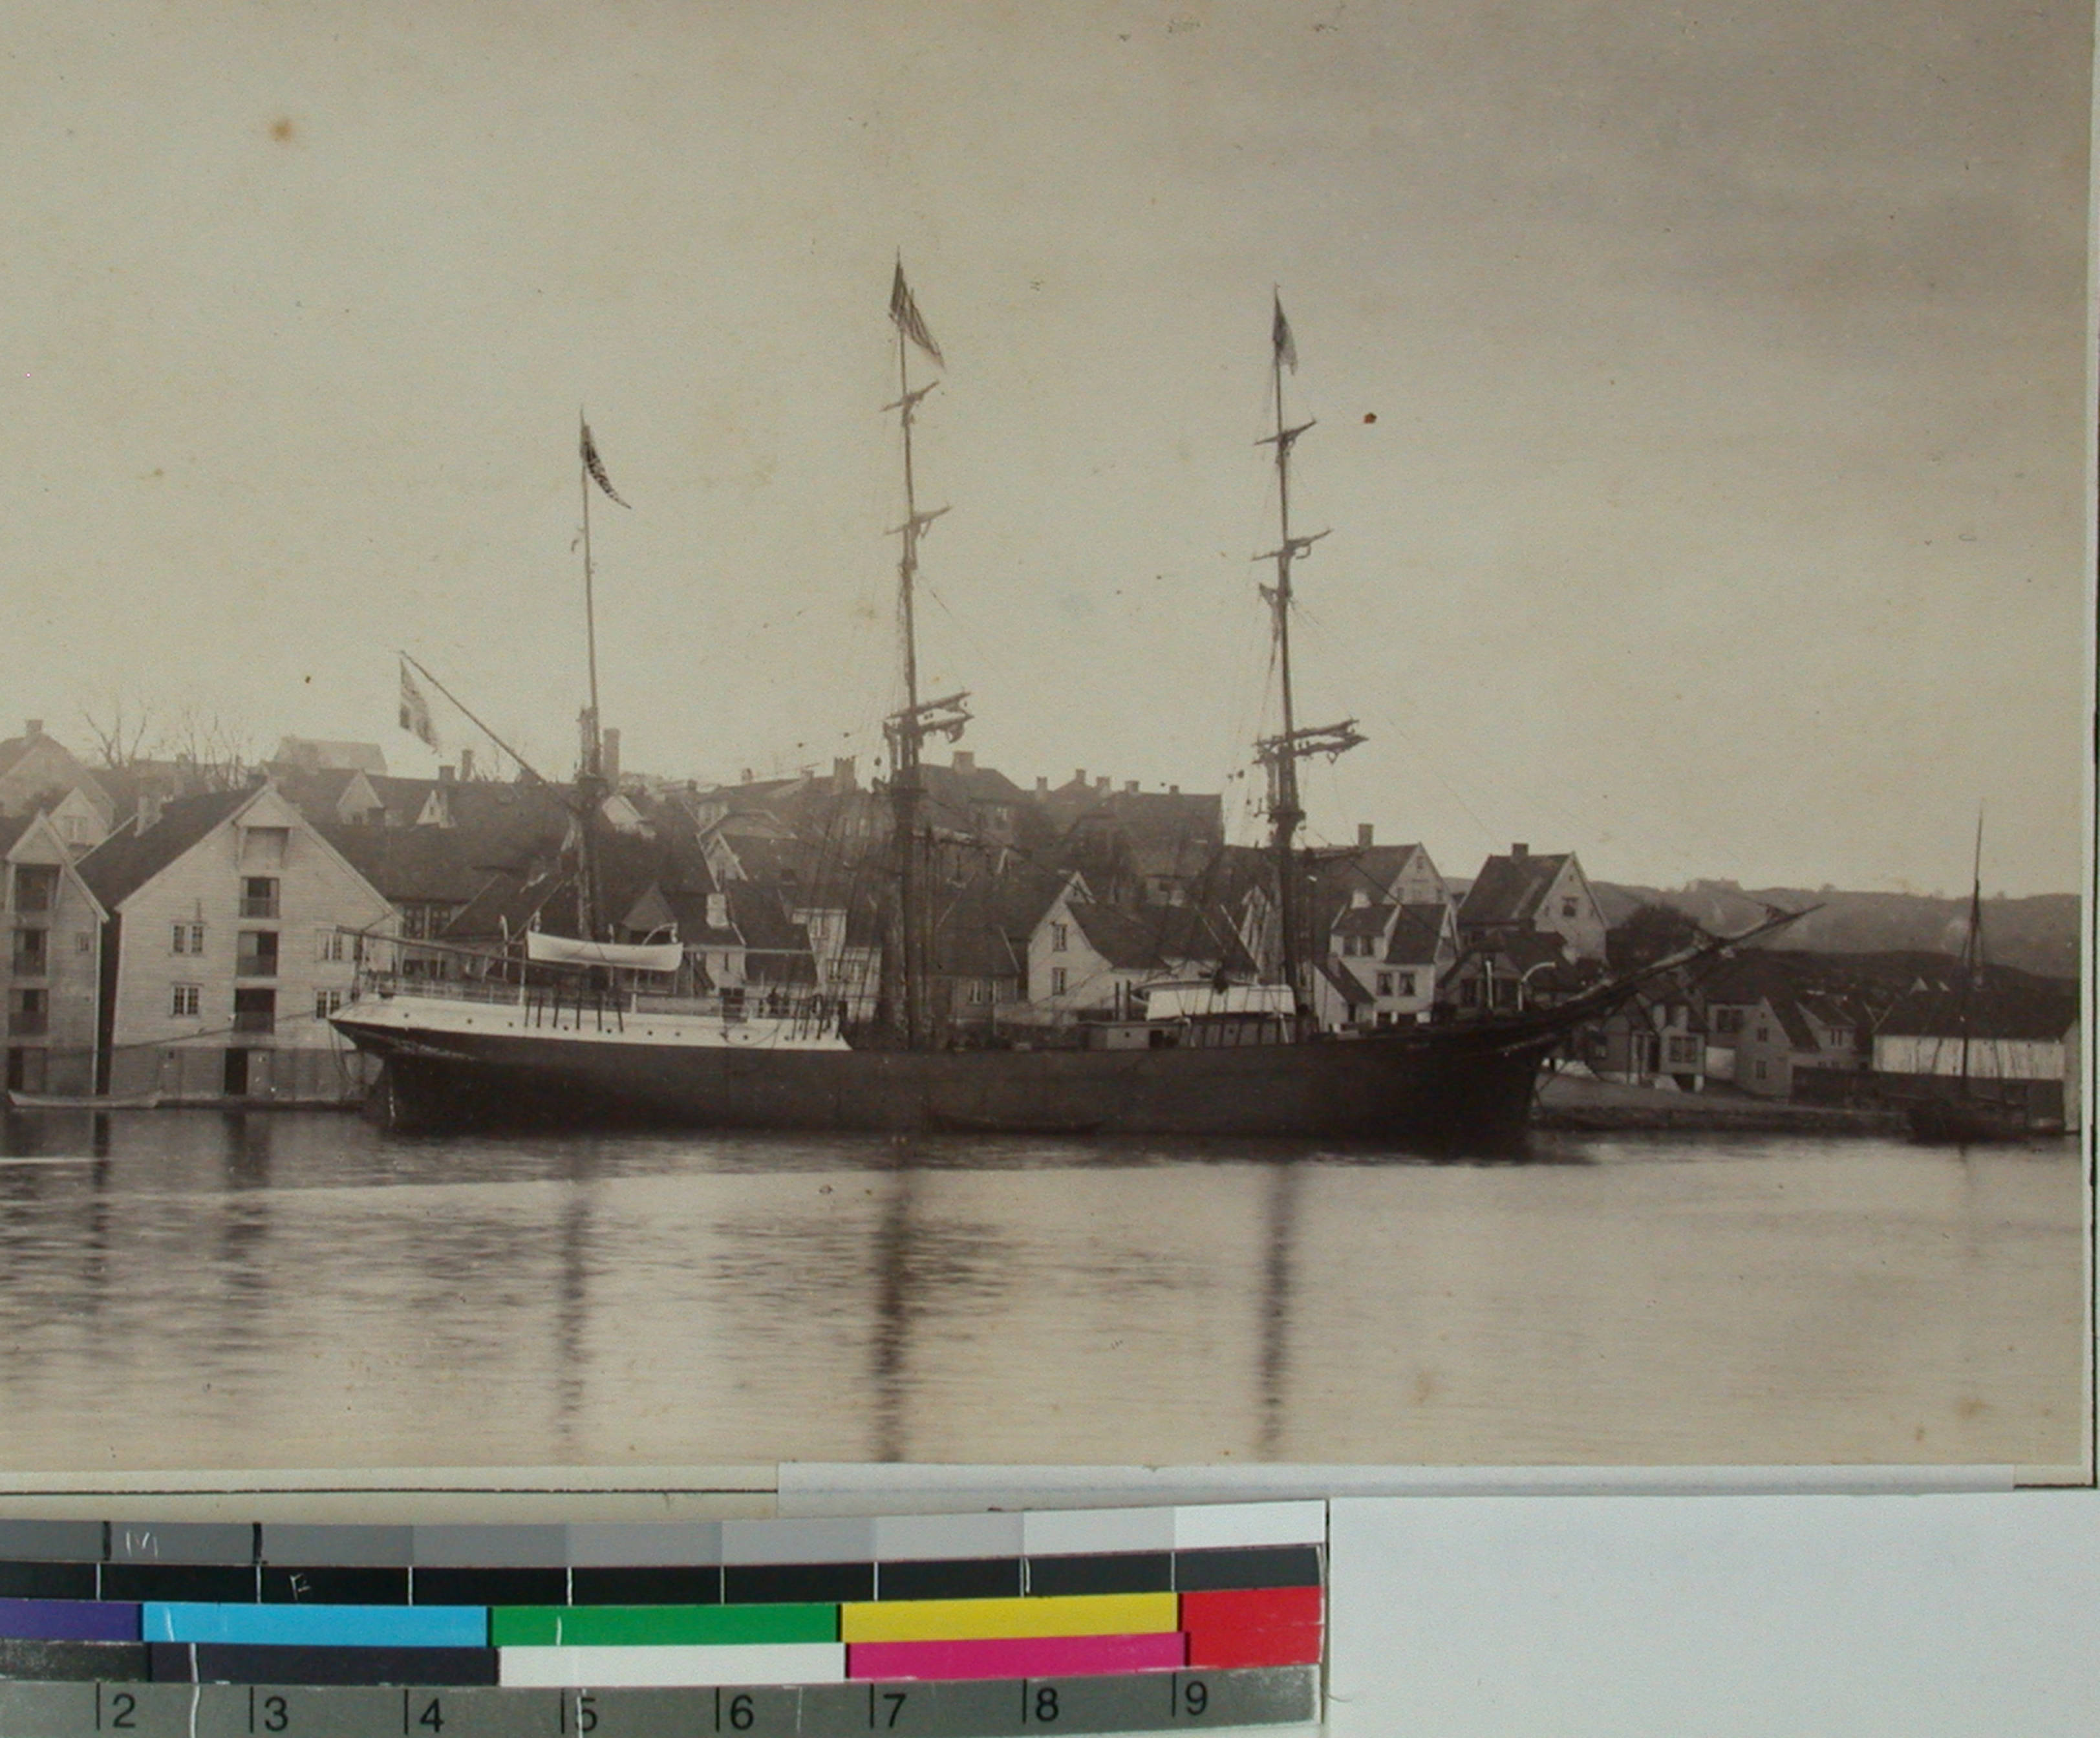 Mission ship Paulus along the Stavanger harbor quay, Norway 1885.jpeg